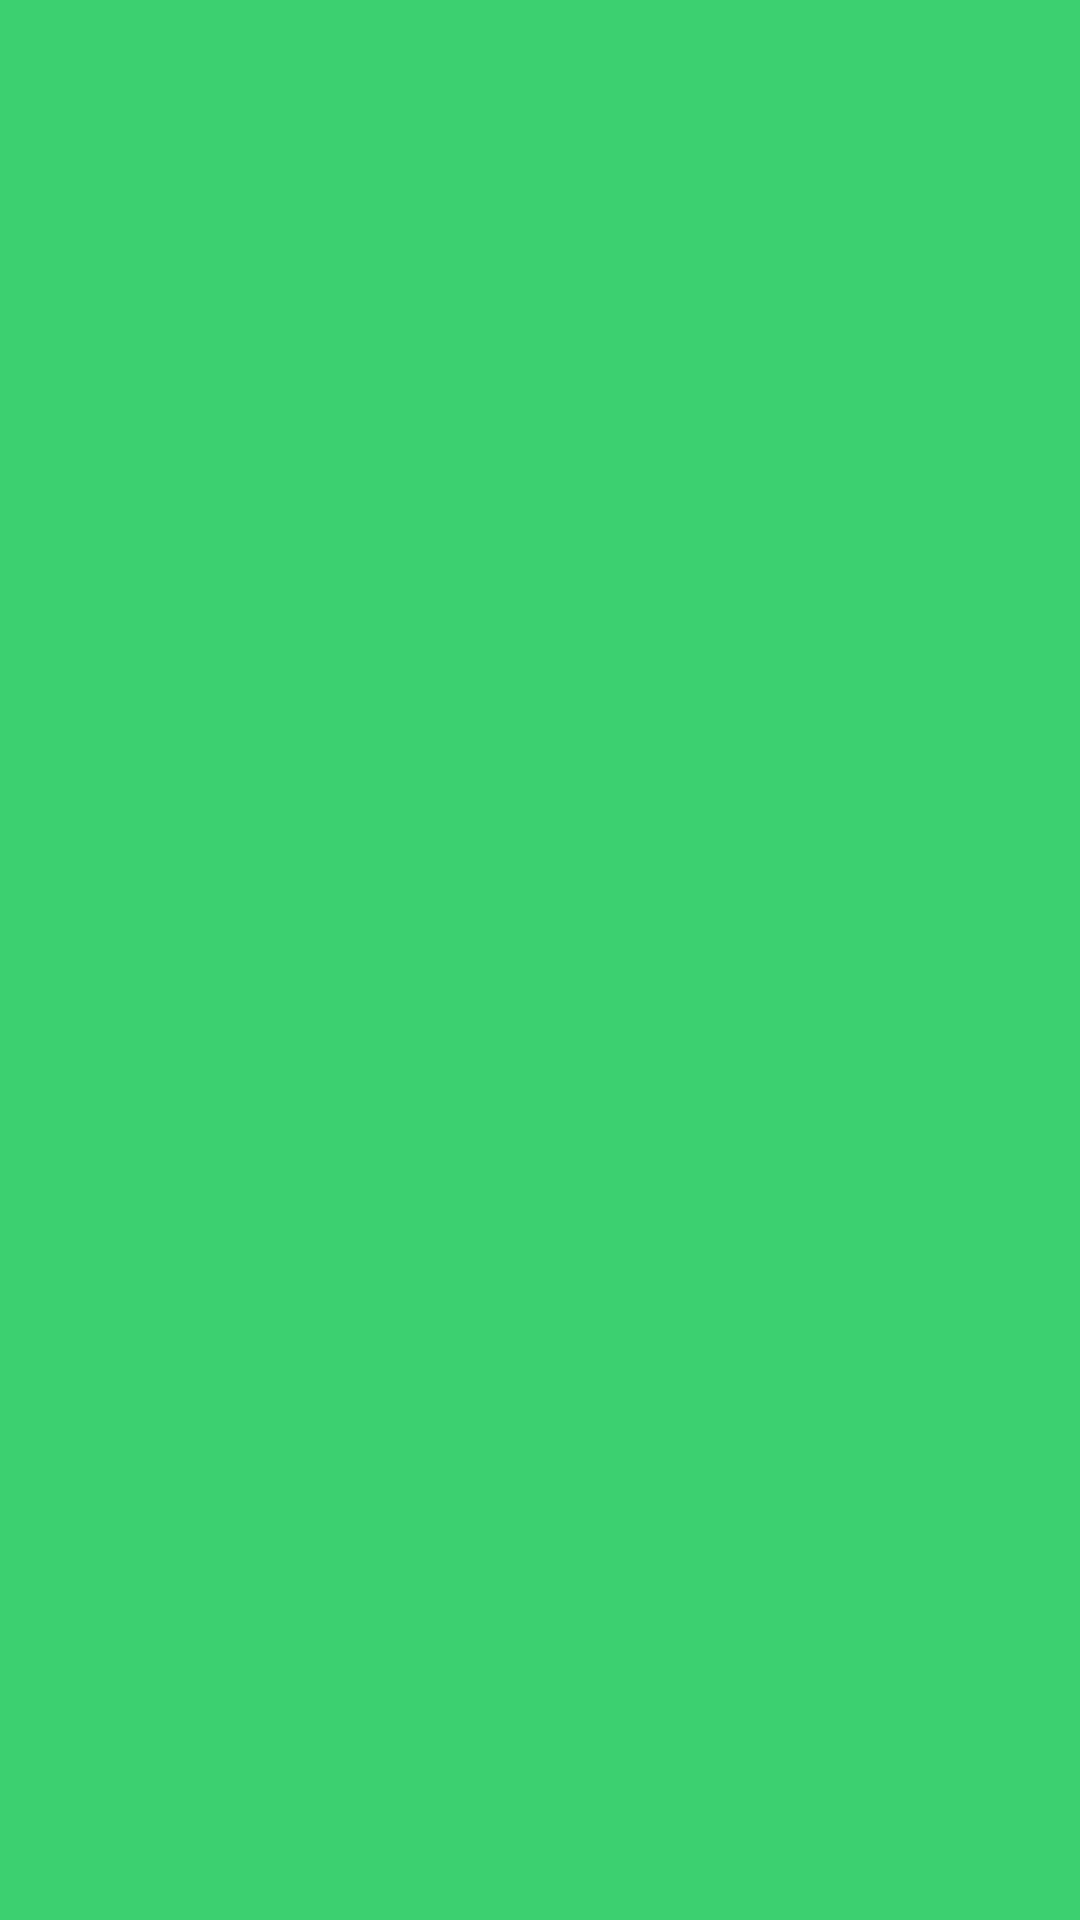 1080x1920 UFO Green Solid Color Background